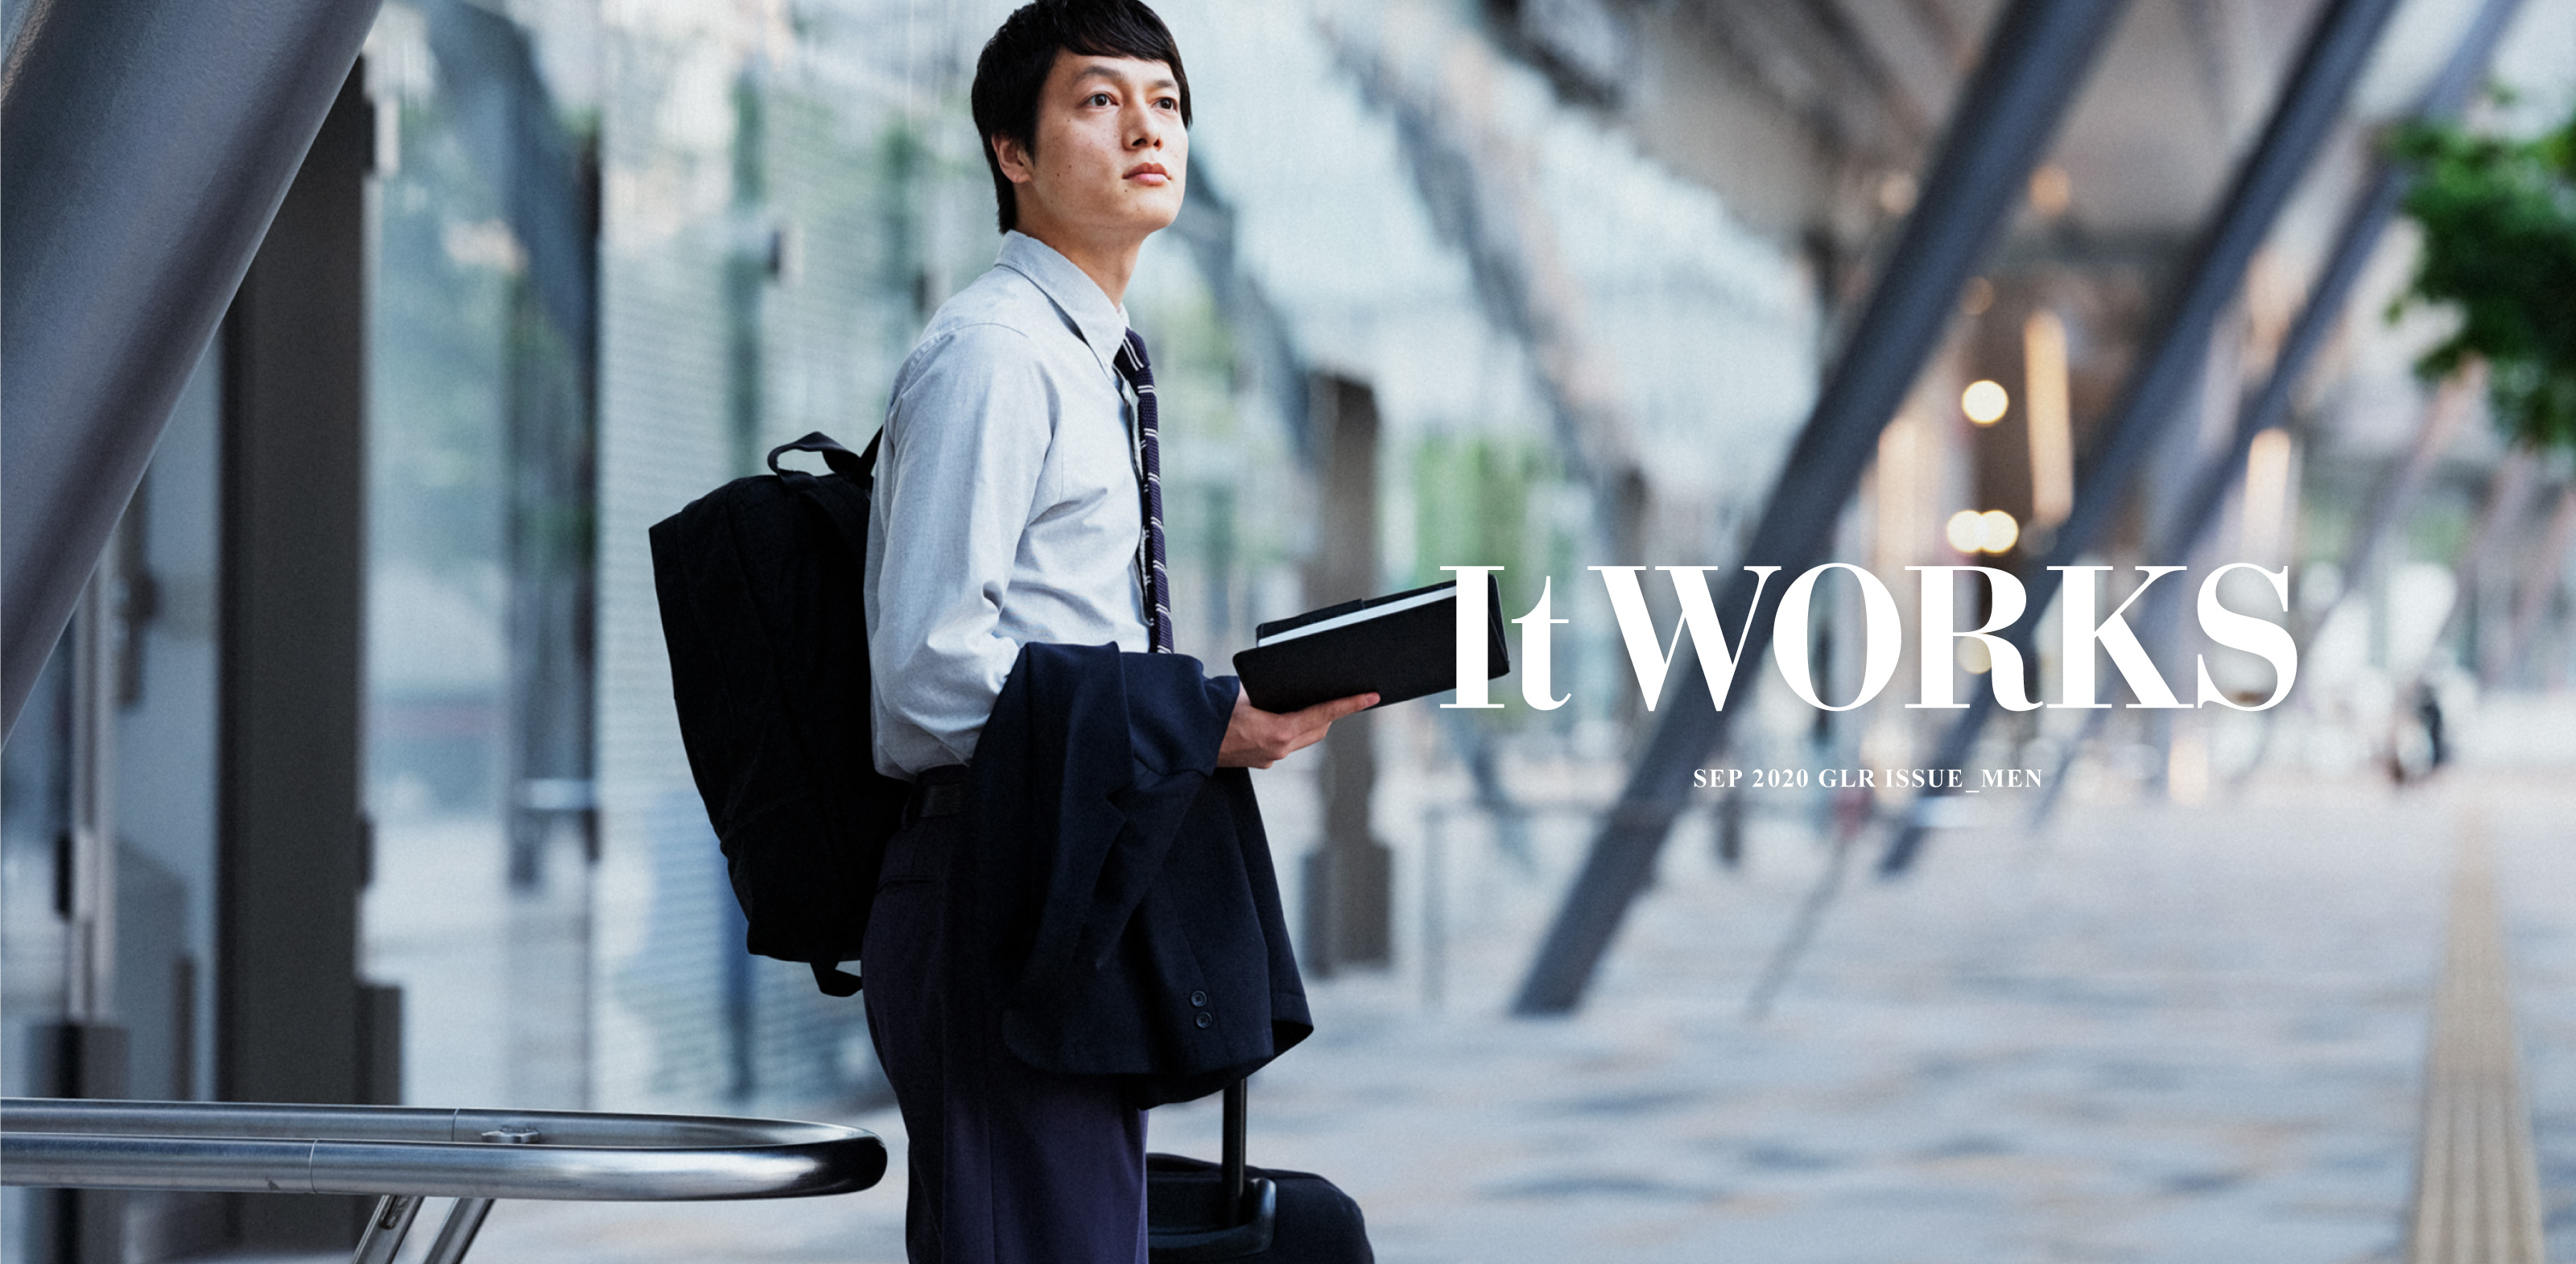 It WORKS SEP 2020 GLR ISSUE MEN- TAIWAN